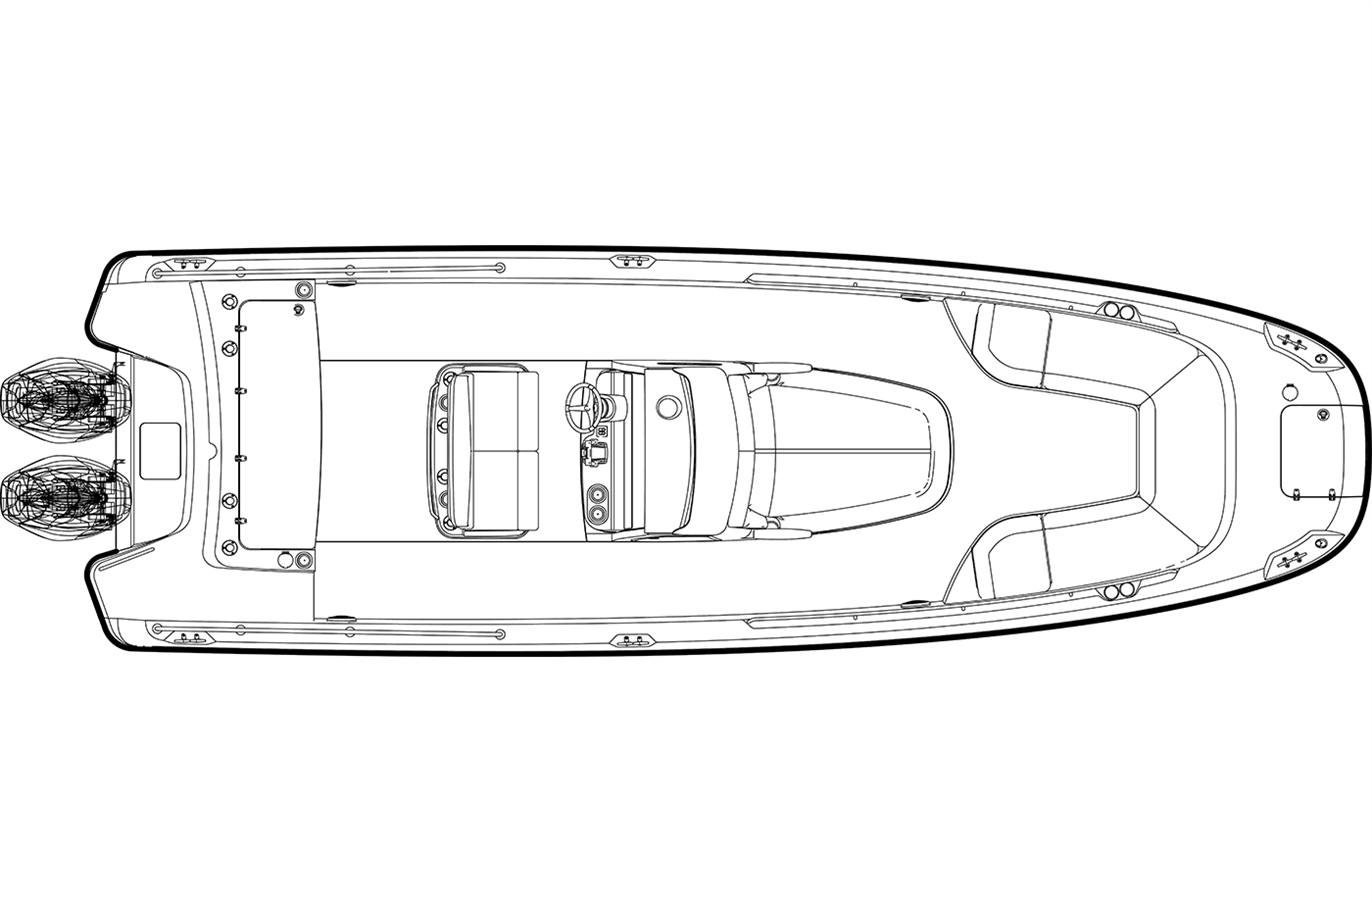 Drawing Schematic Diagram Of Navigation Lamp Wiring On Boston Whaler